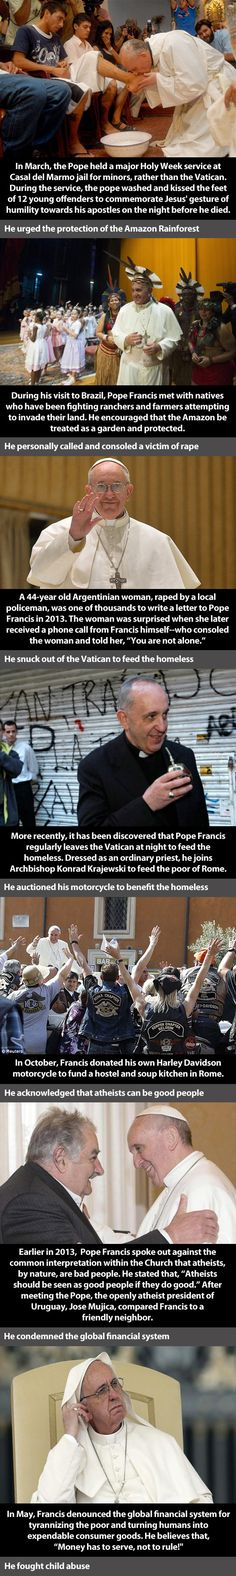 I never had much time for the Catholics idea of a pope but this is one pope I have come to admire. He is the first I have seen that hasn't placed himself on a pedestal, he is a beautiful human being.